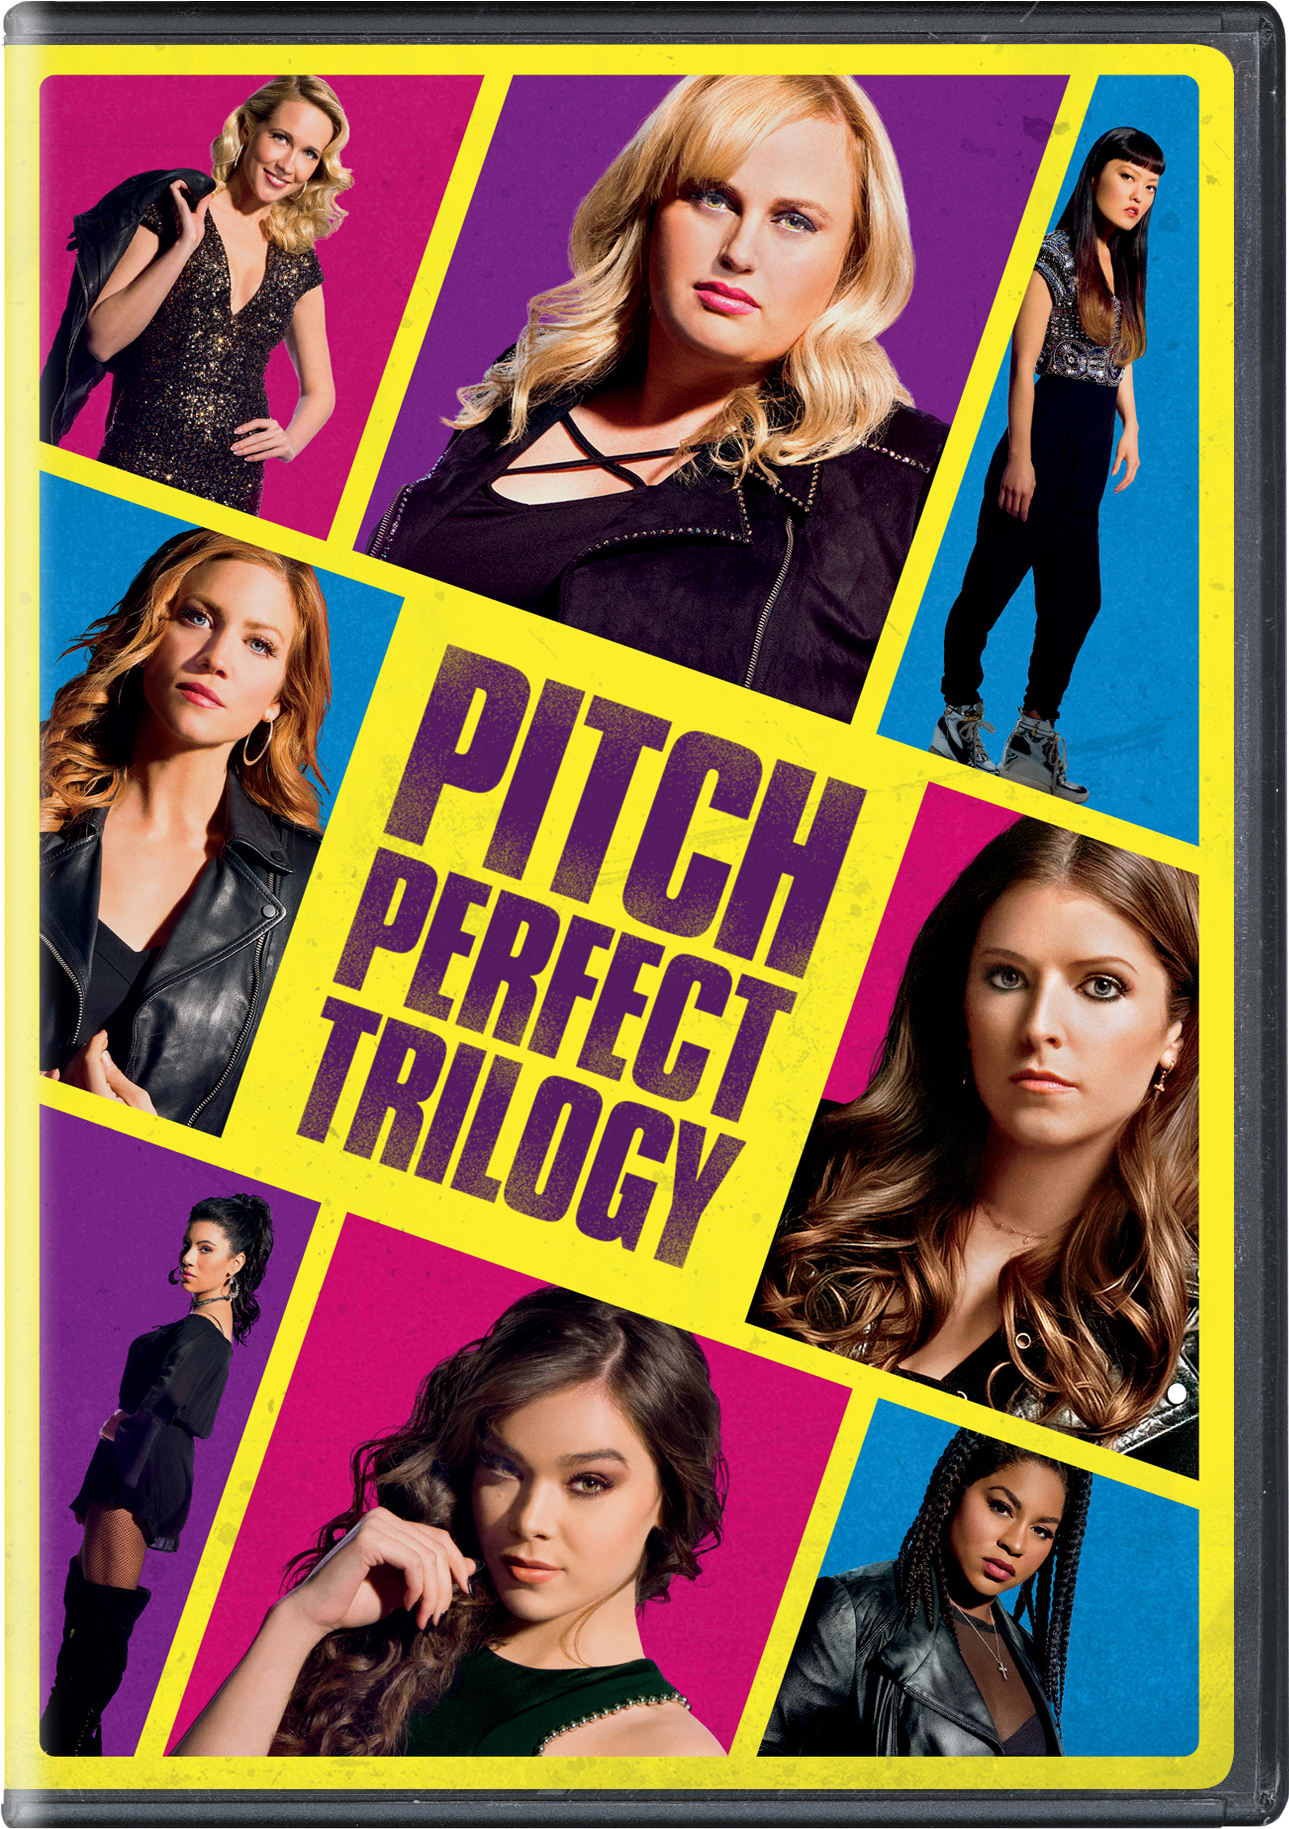 Pitch Perfect Trilogy [DVD]